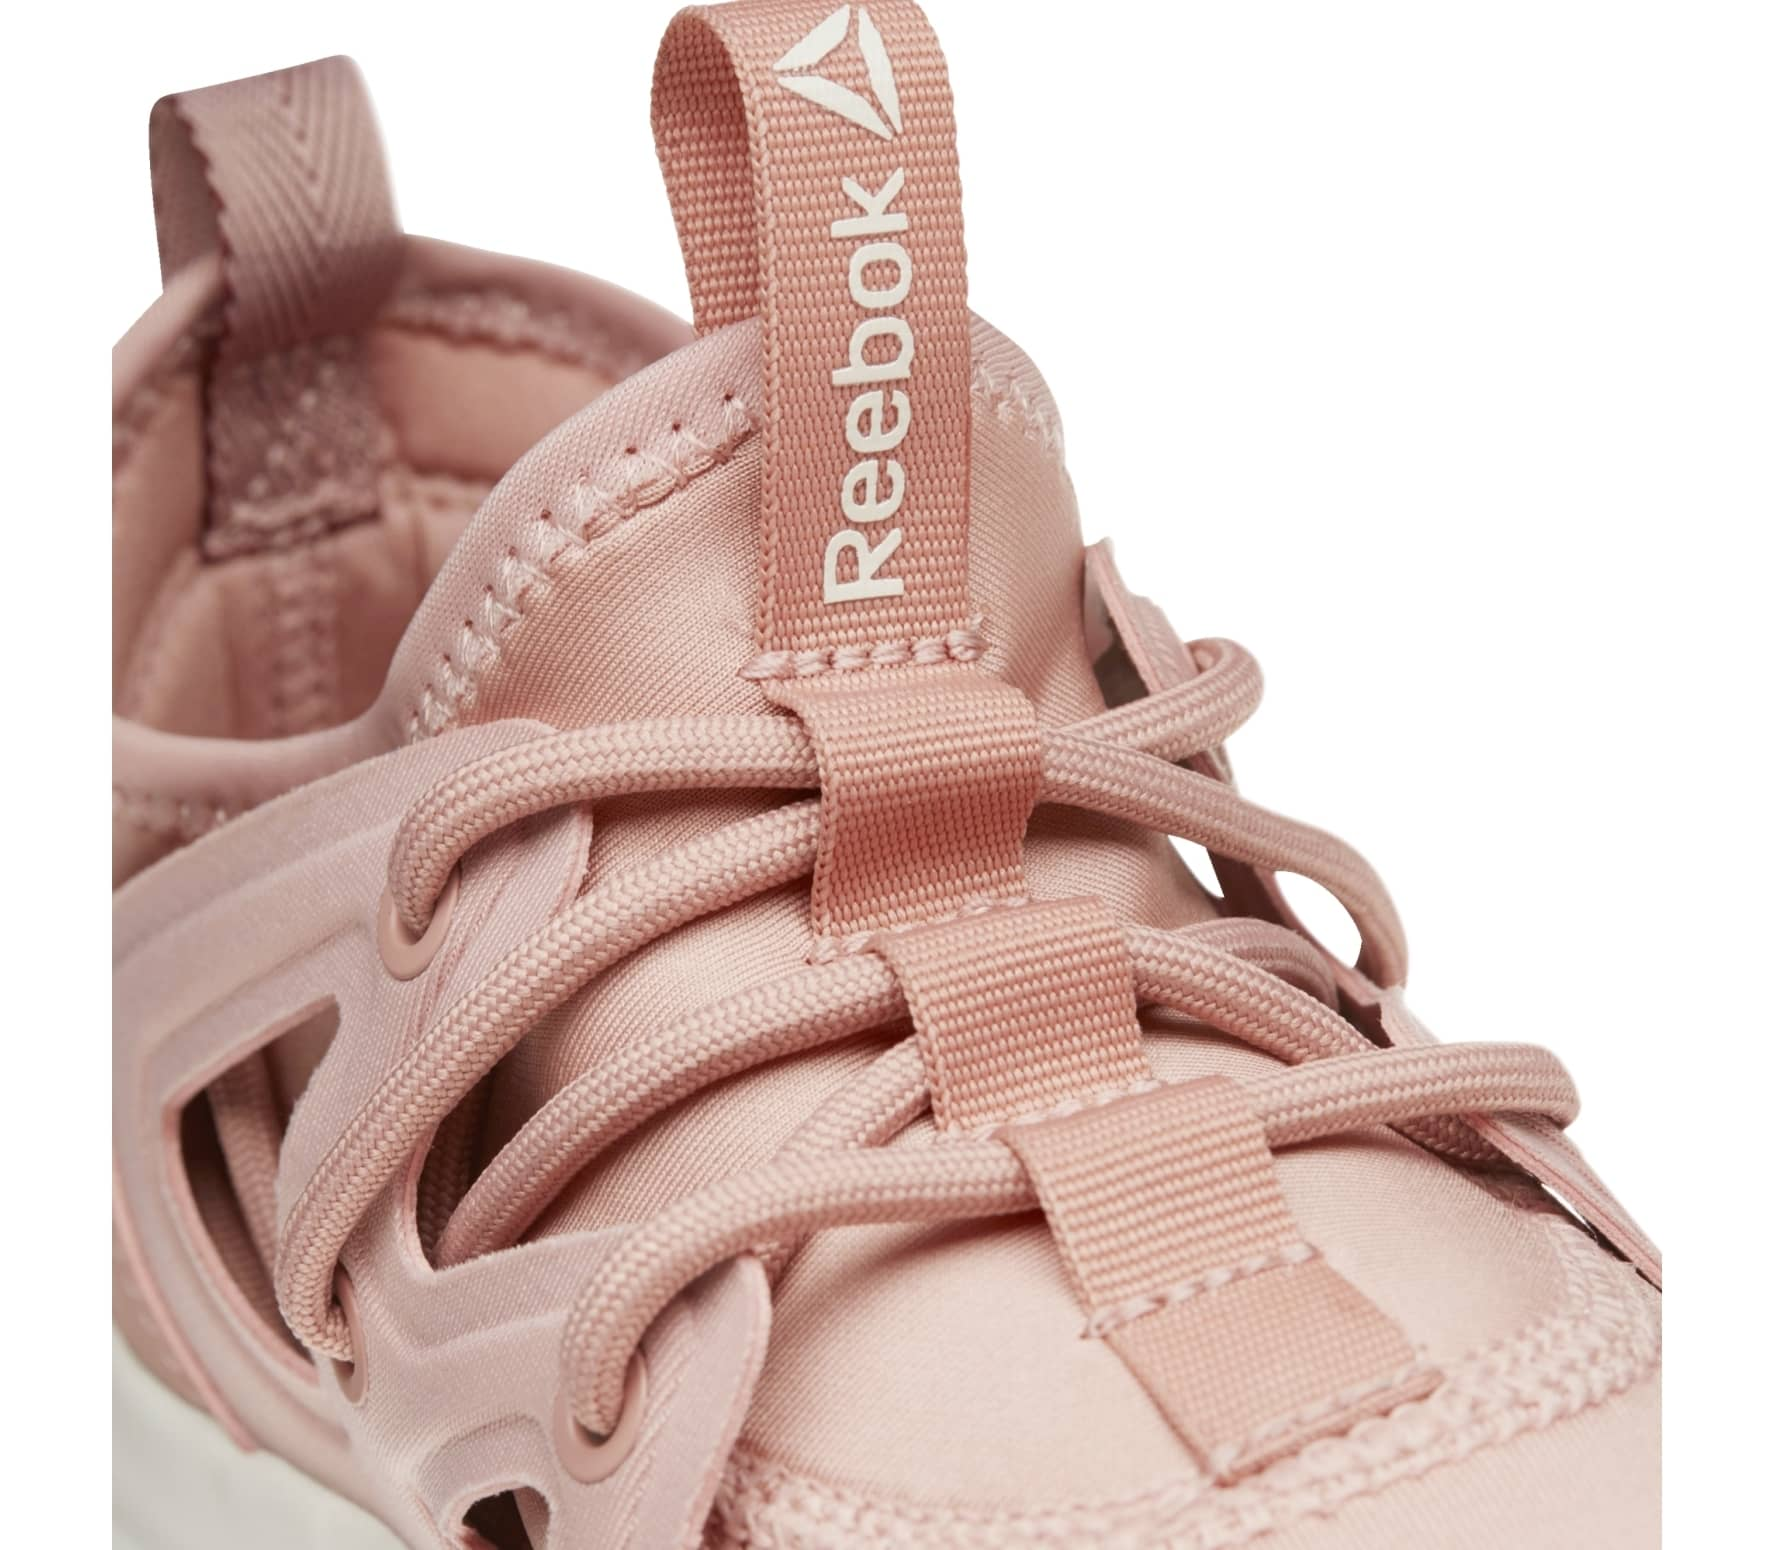 5eabc04f69f Reebok - Cardio Motion women s training shoes (pink) - buy it at the ...